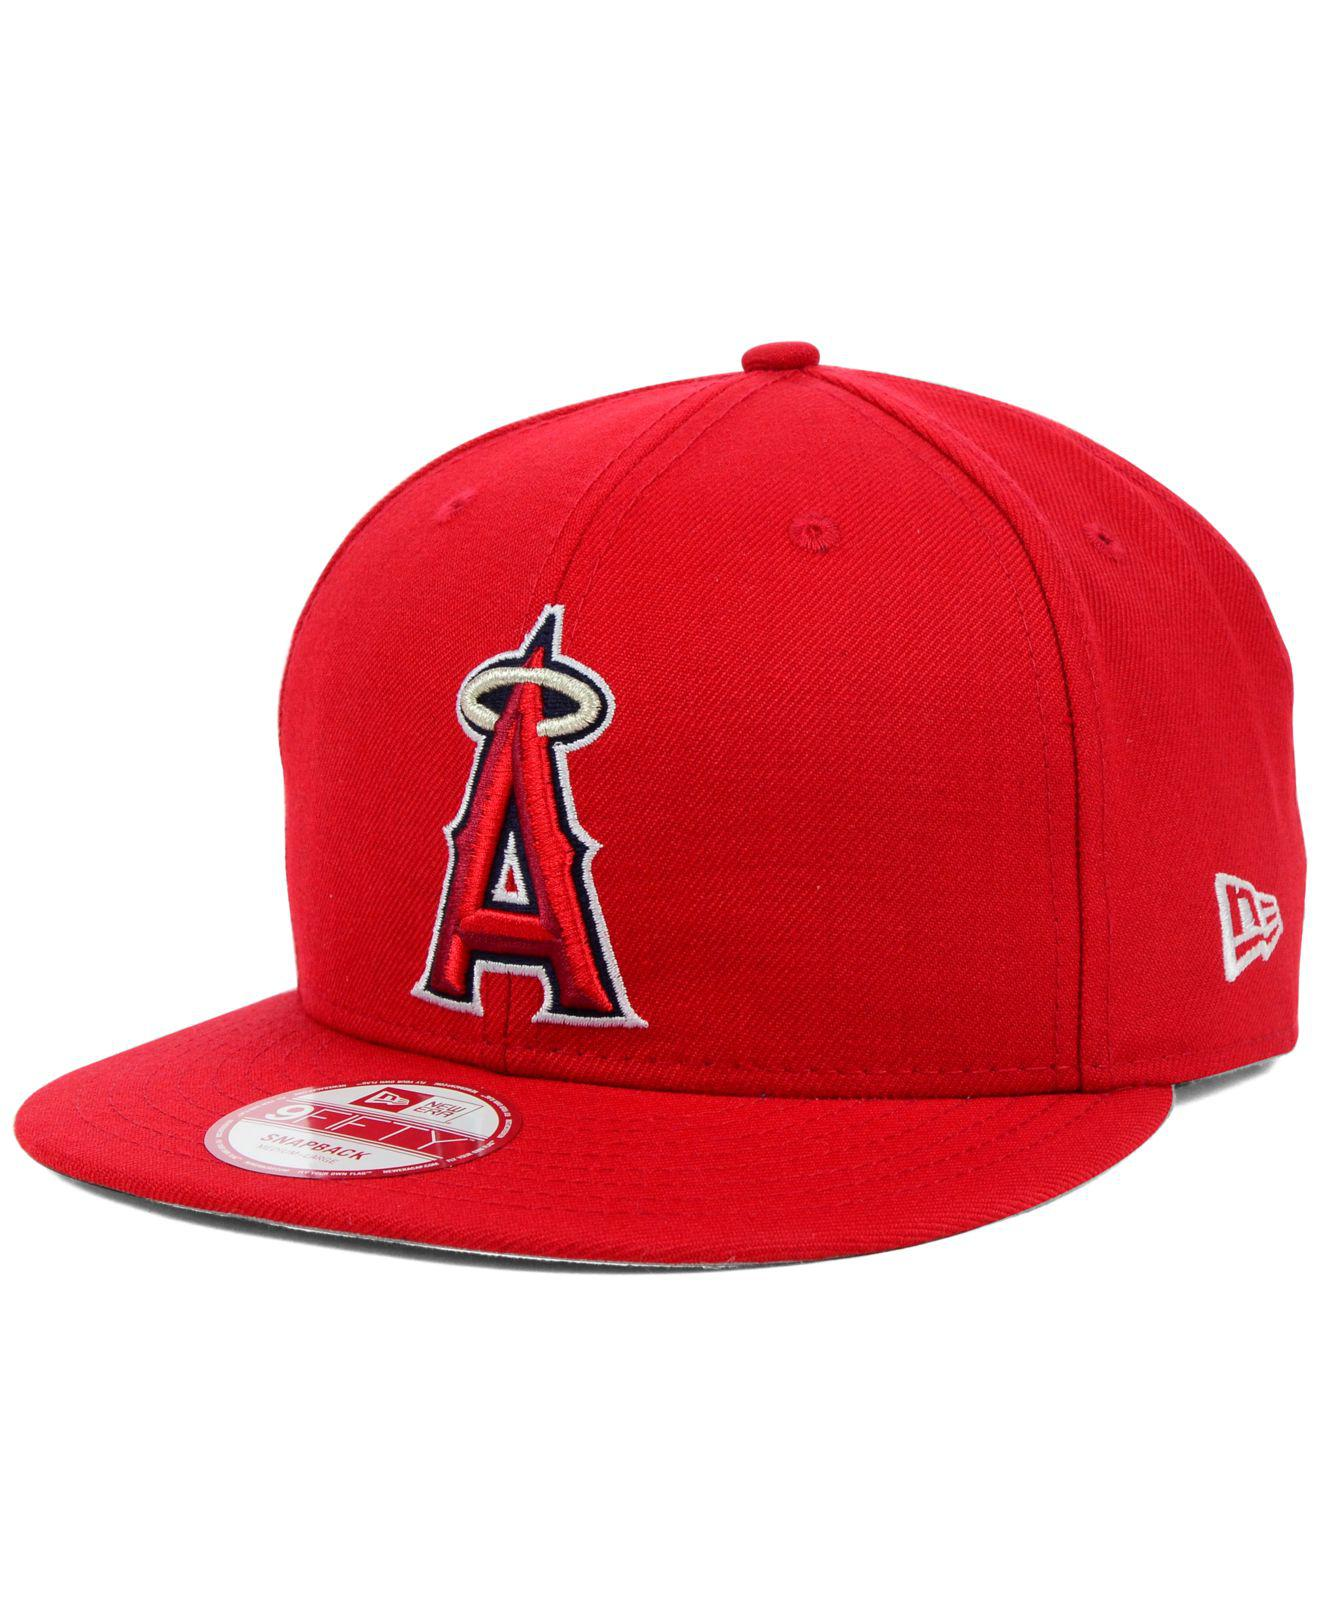 buying now the sale of shoes outlet on sale super popular f8bc9 ccca2 new era los angeles dodgers mlb 2 tone ...